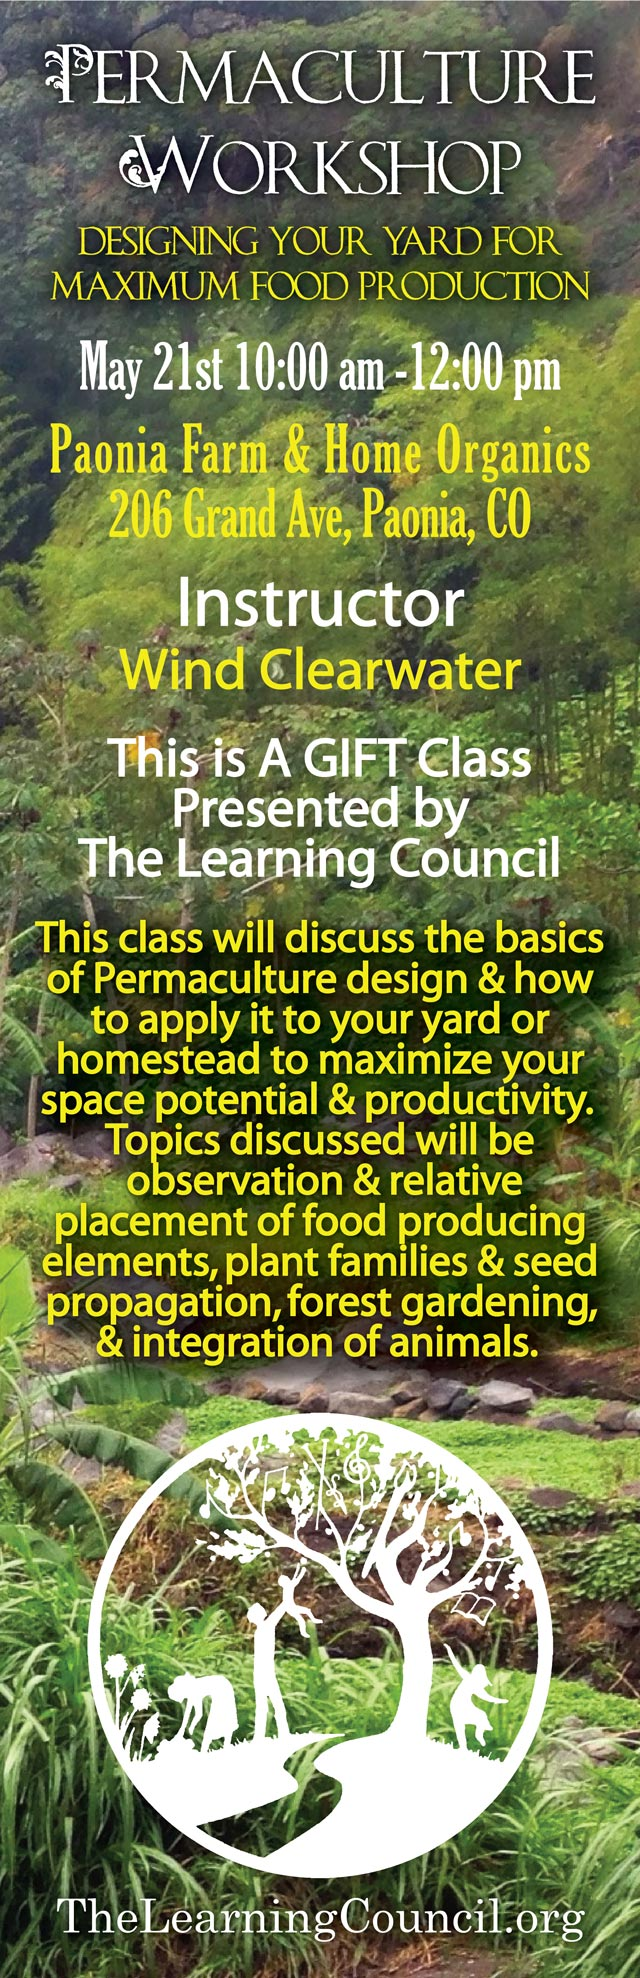 Permaculture poster